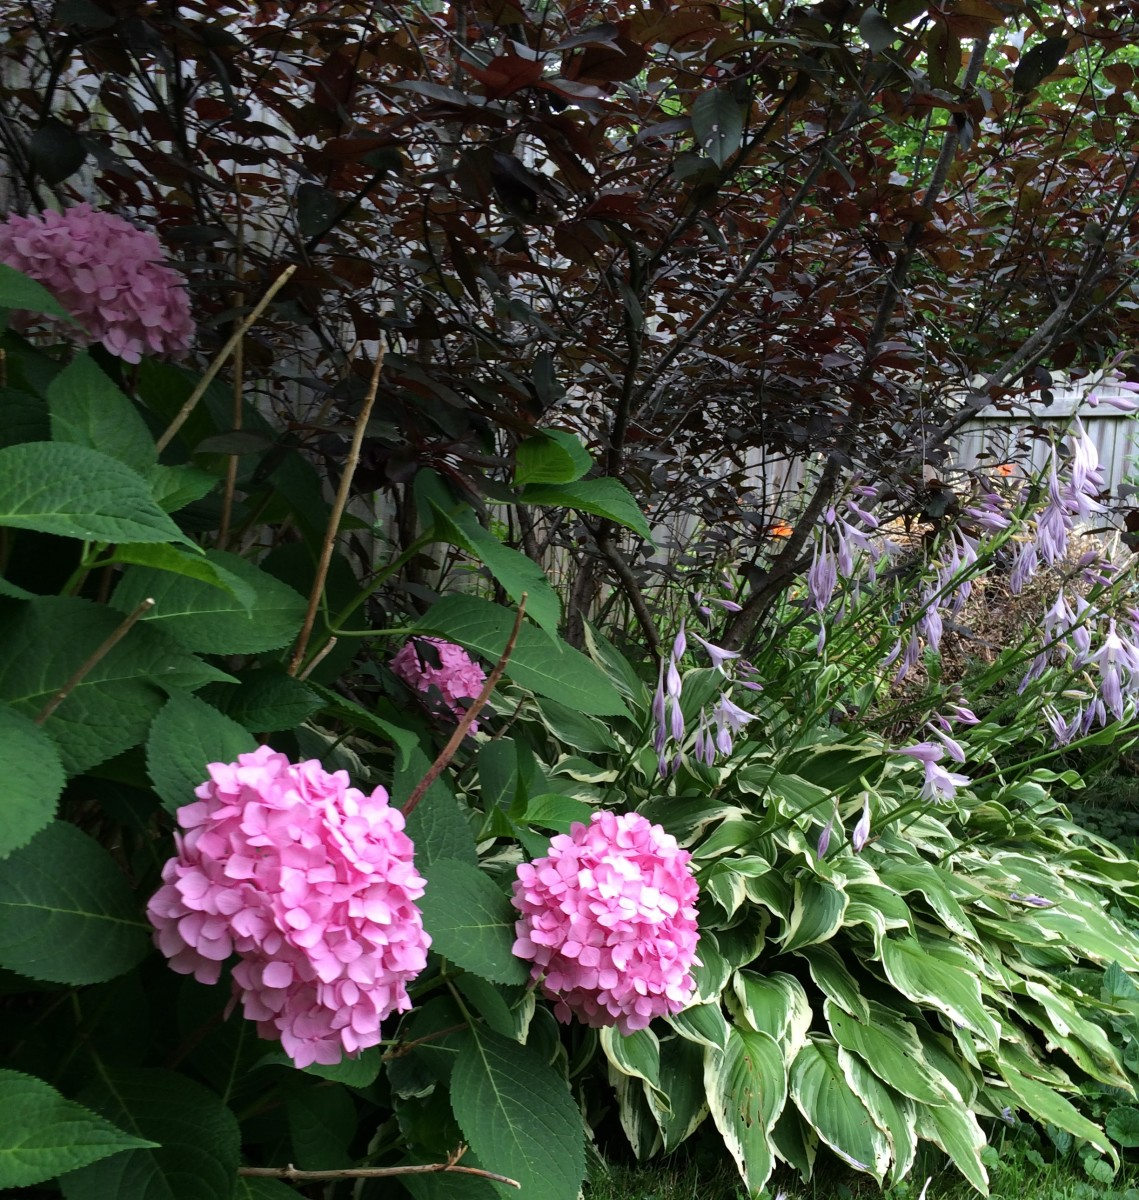 Hydrangea and hostas grow in the yard, away from the house, protected from wind and shaded from sun by a fence.